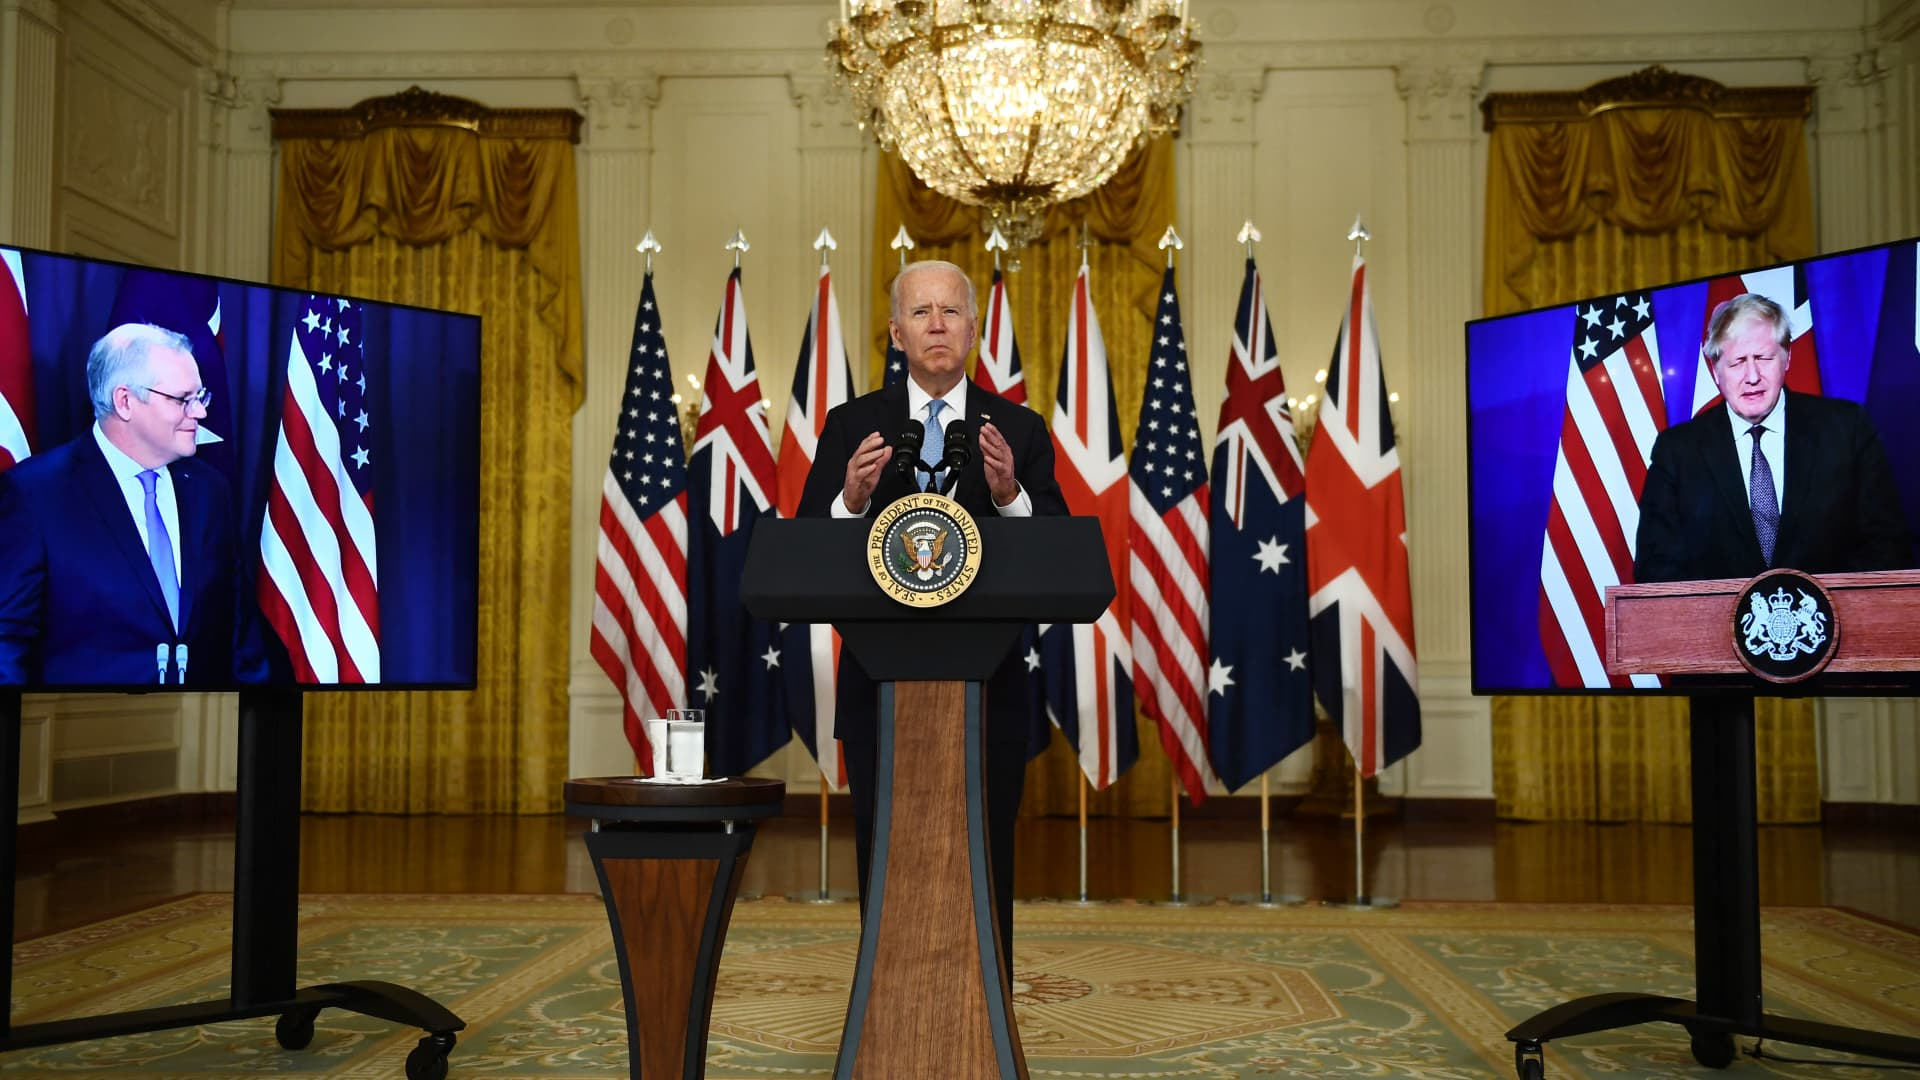 U.S. President Joe Biden in a virtual press conference with British Prime Minister Boris Johnson (R) and Australian Prime Minister Scott Morrison on Sep. 15, 2021. The three leaders announced a new security partnership to strengthen stability in Indo-Pacific.